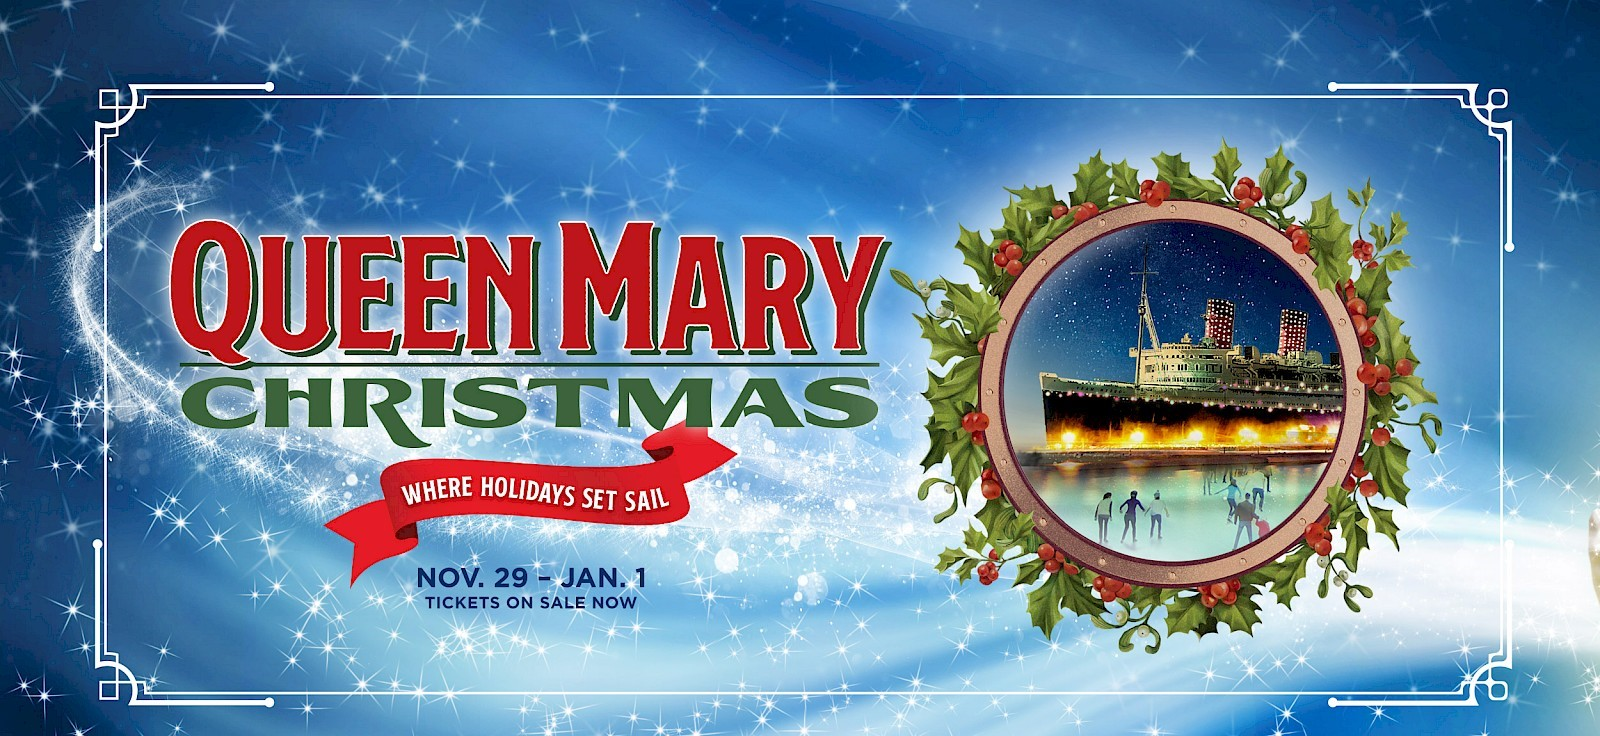 Queen Mary Christmas, Theme Parks, Large Scale Attractions, Installations, Long Beach, CA